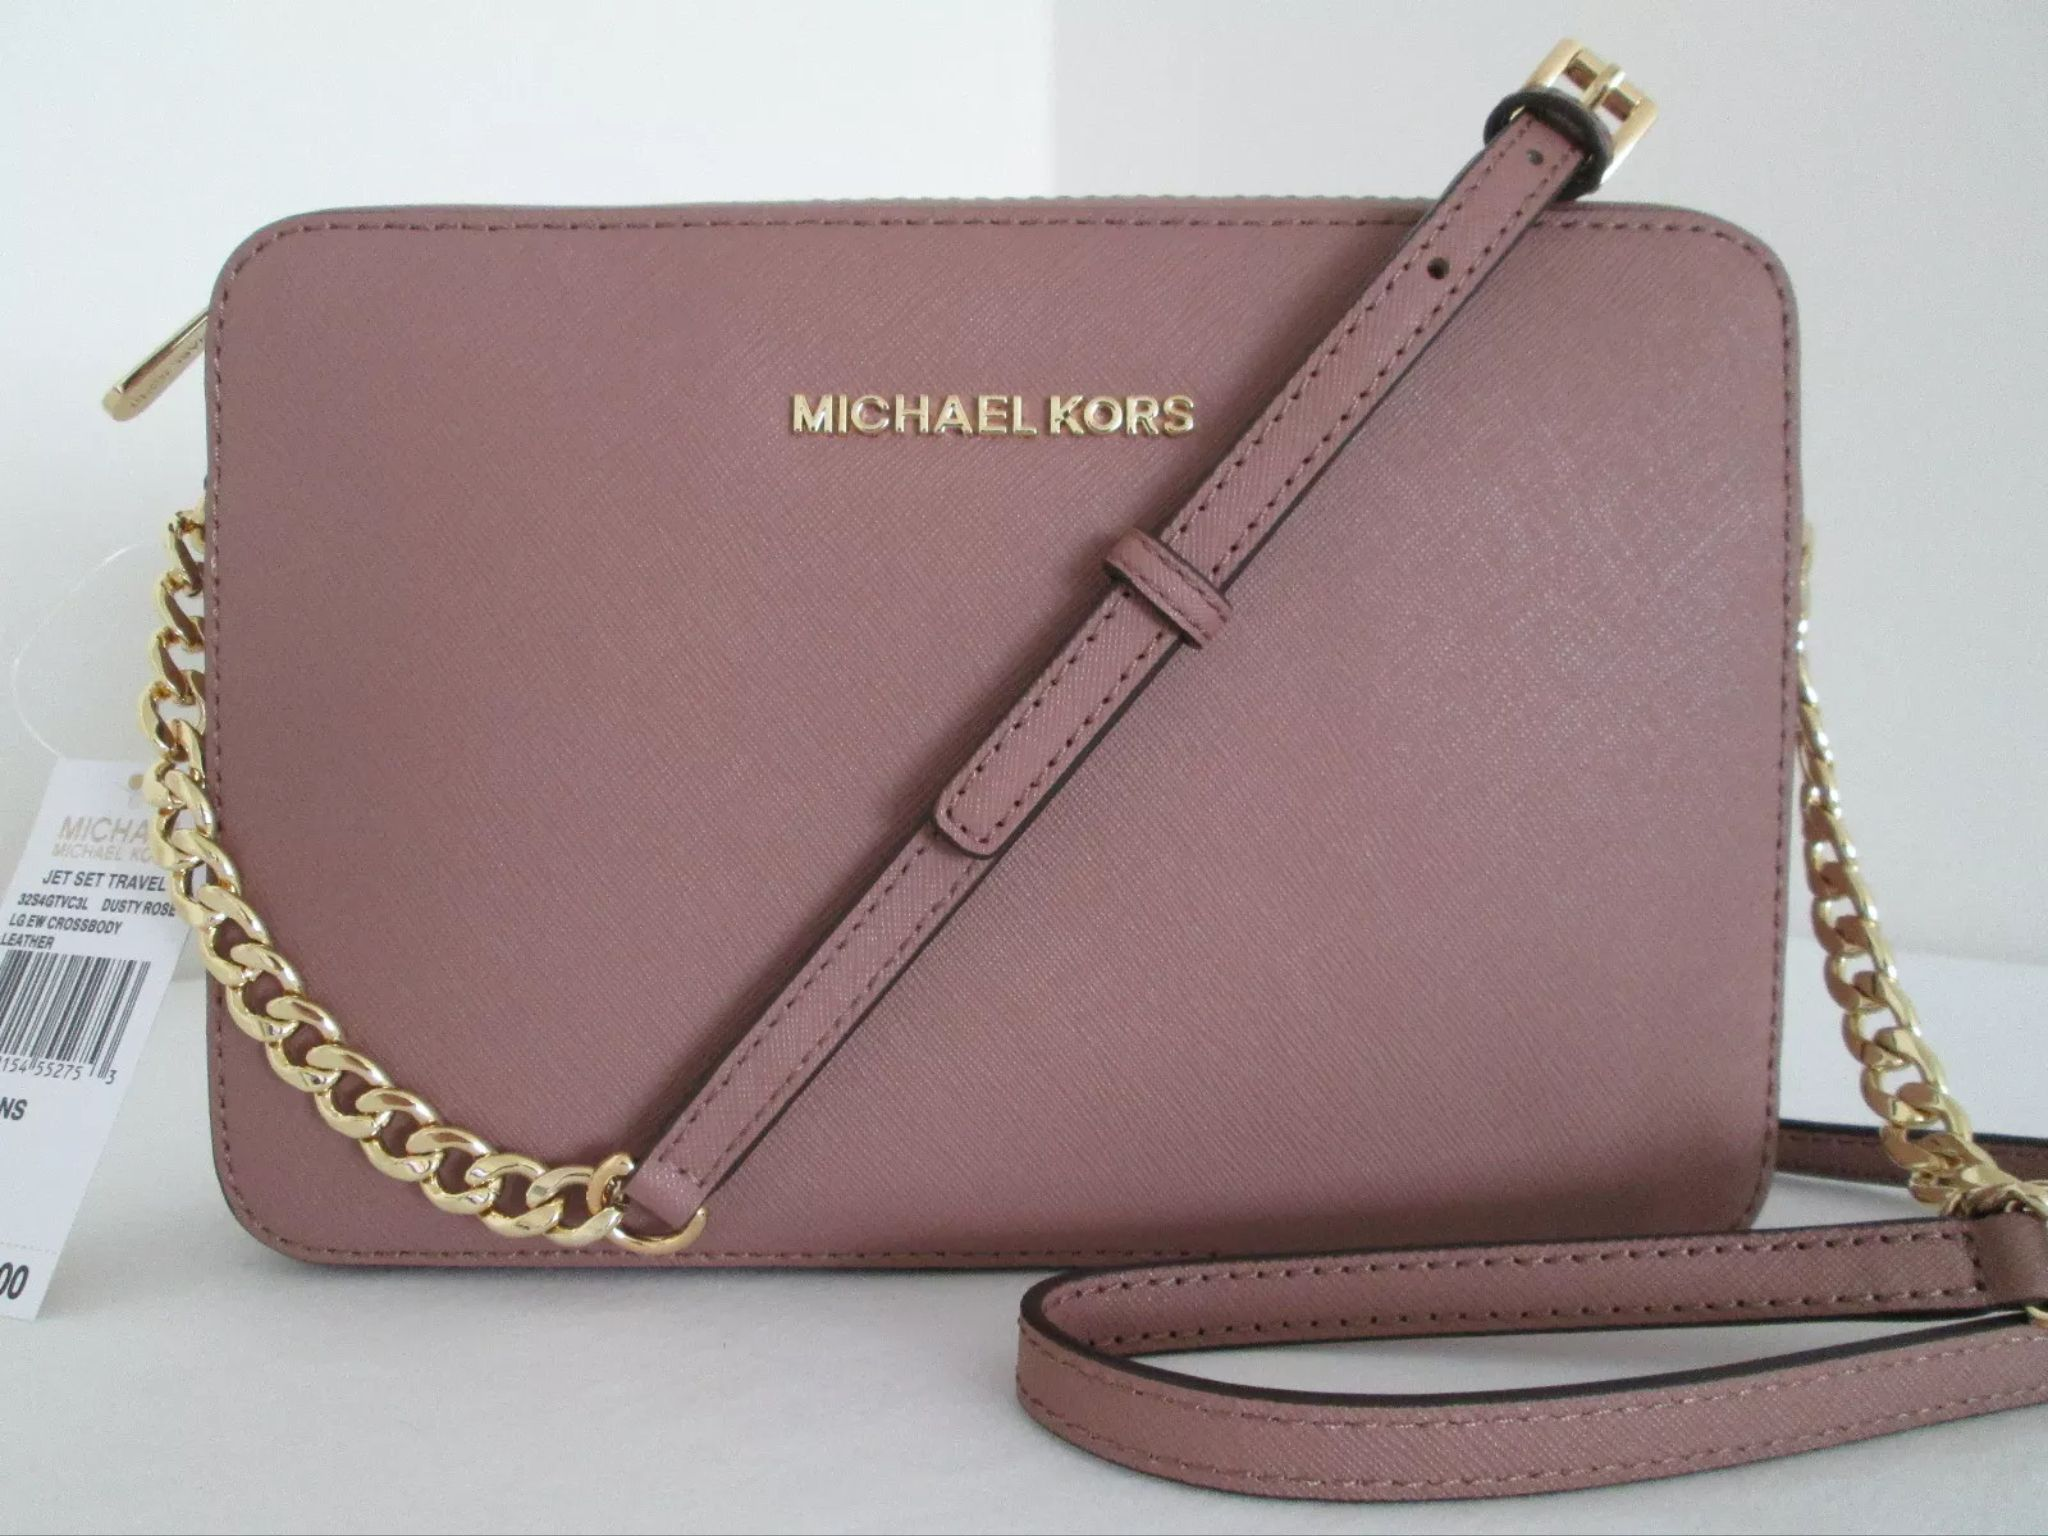 6b83caf3a82fb4 MK dusty Rose with gold chain | Kors in 2019 | Bags, Handbags ...